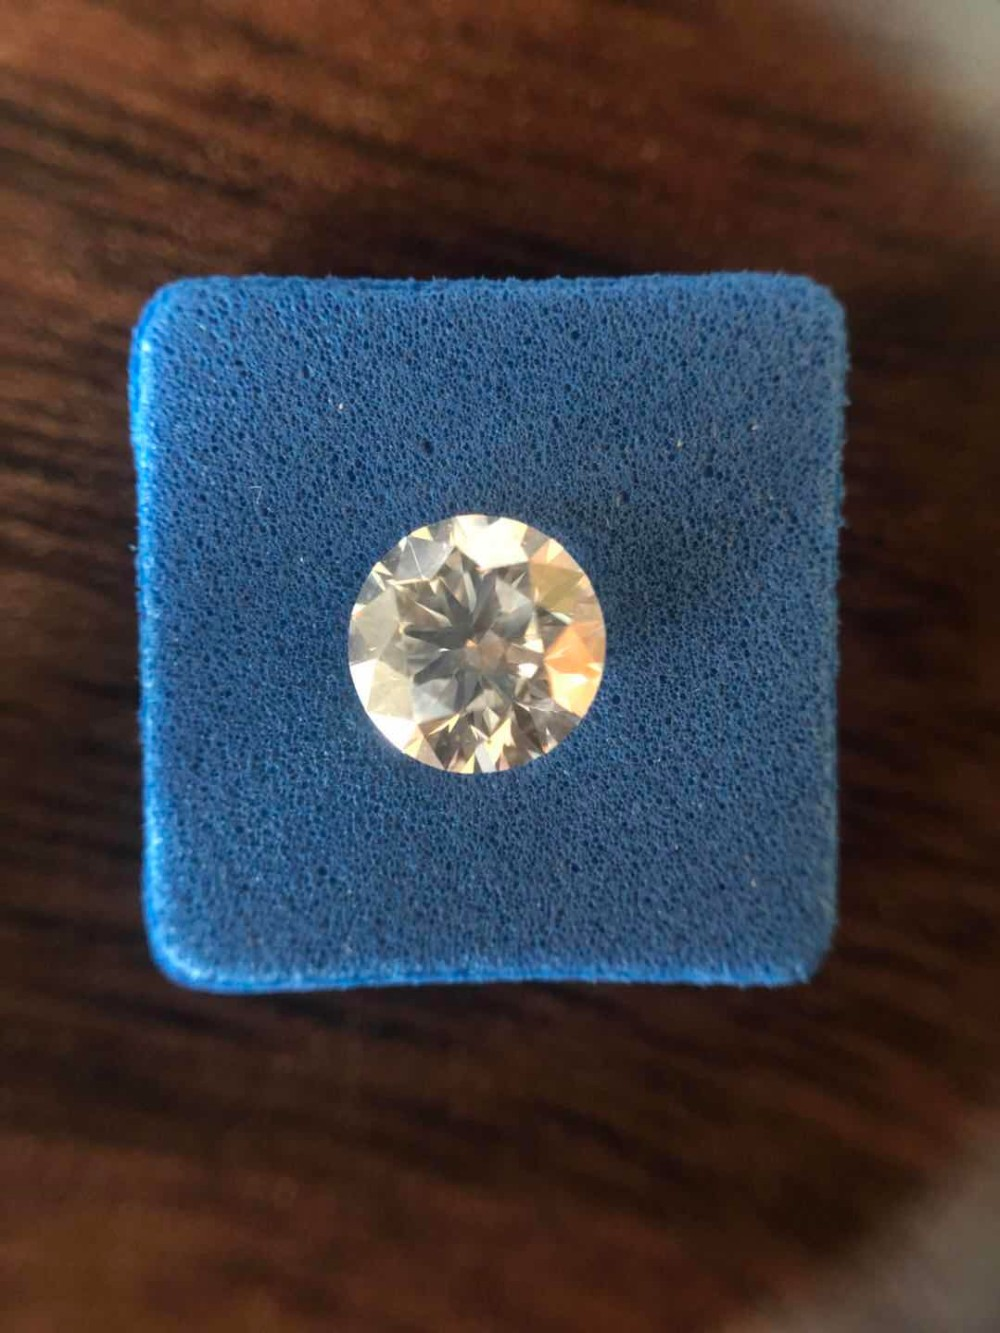 CVD Polished Diamond Man Made HPHT Loose Single Cut Diamond Good Price